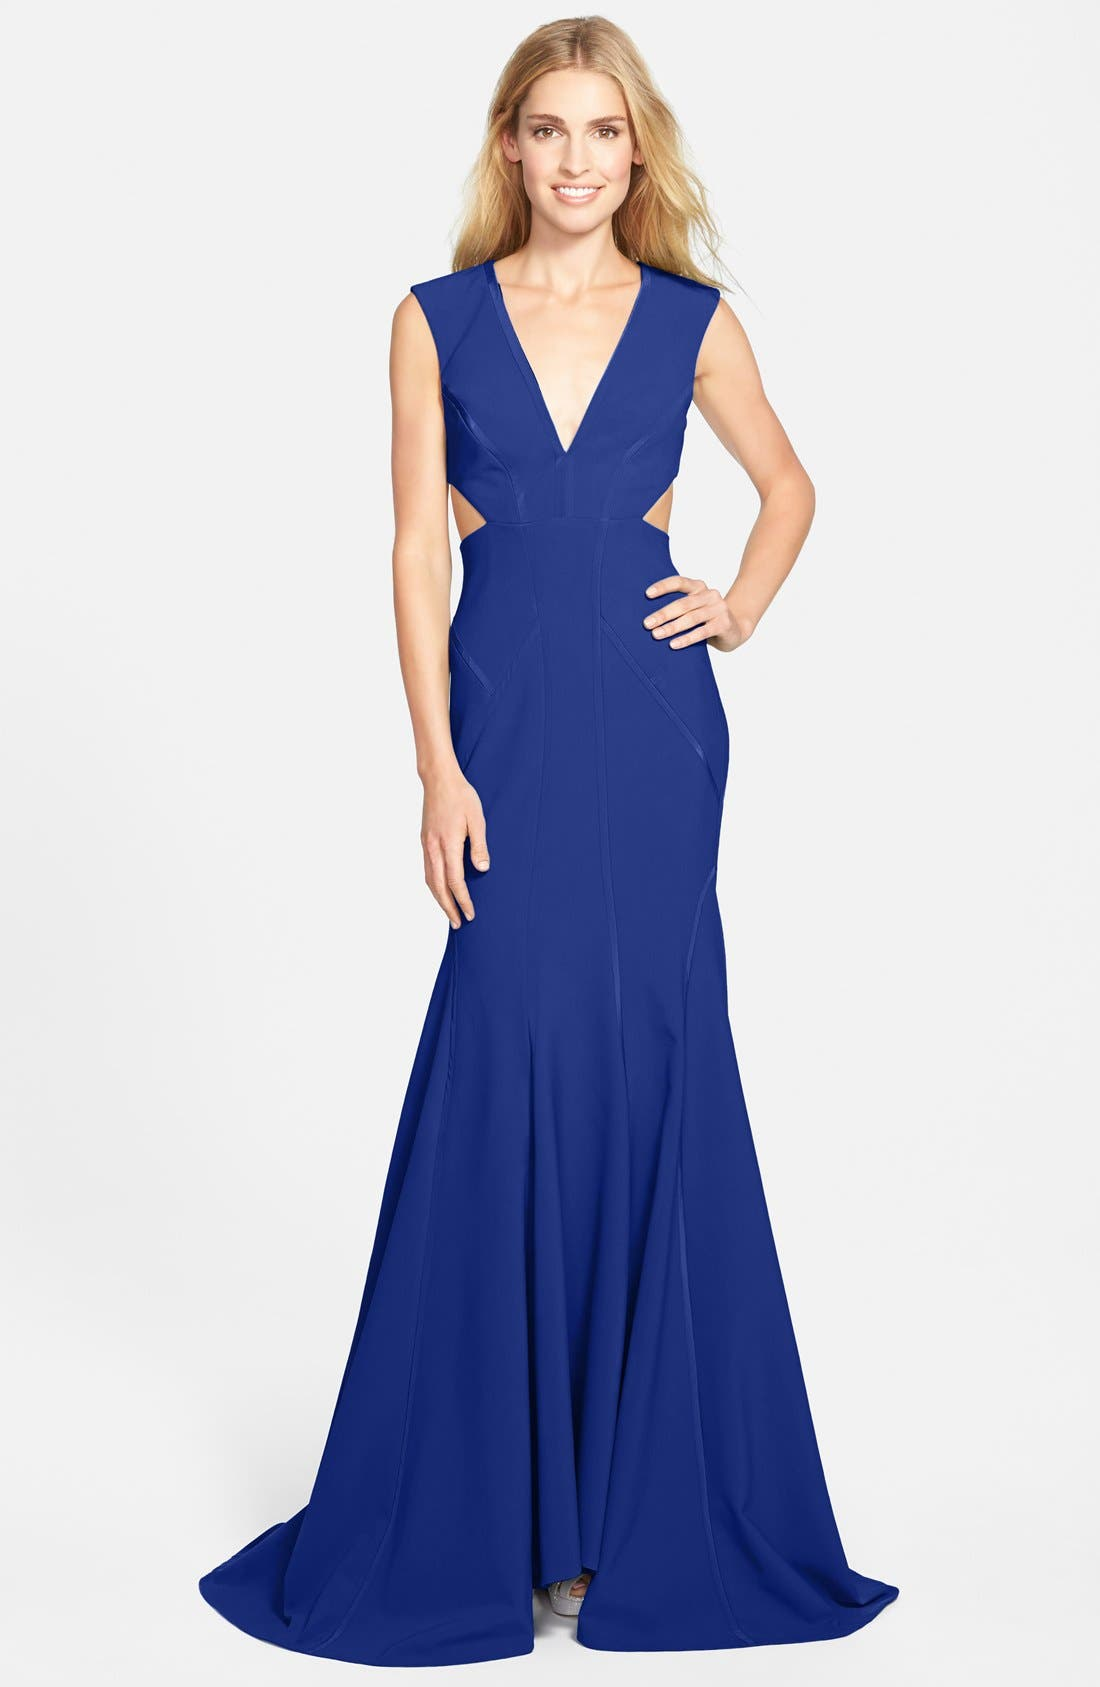 Main Image - Nicole Miller Cutout Crepe Mermaid Gown